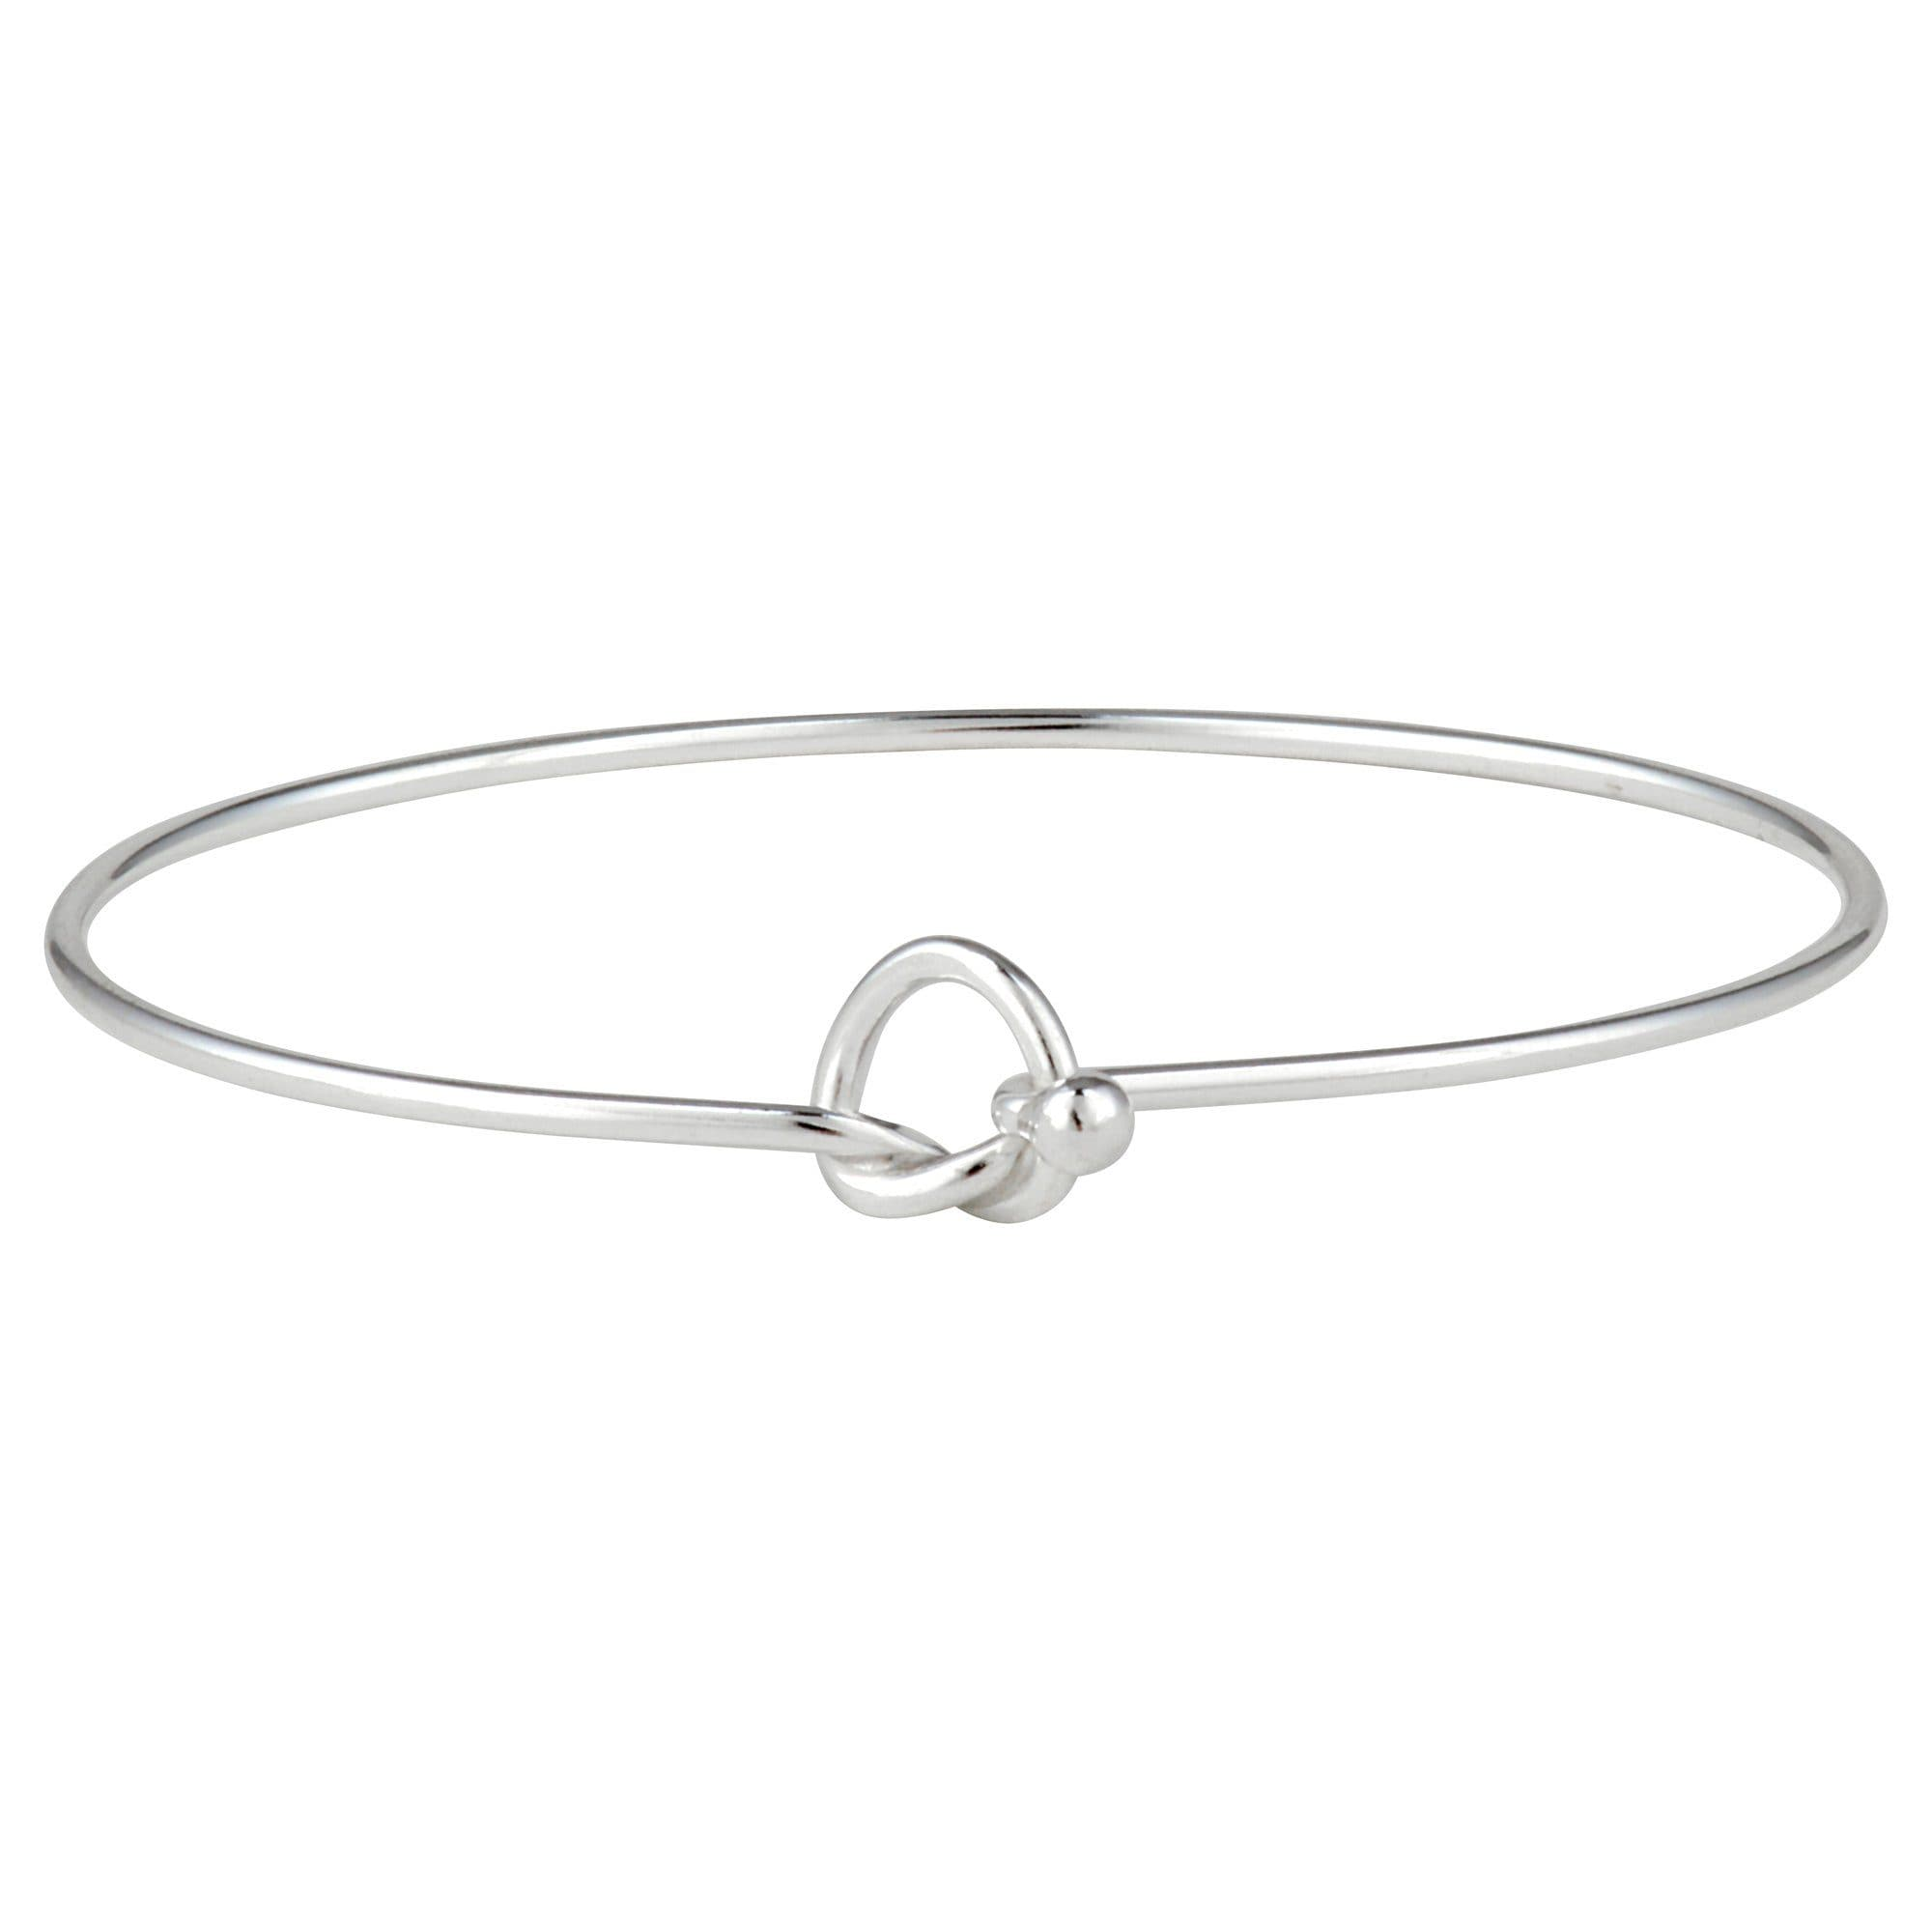 id frog sterling d front engraved the bangles silver plain i great product bracelets bangle bracelet